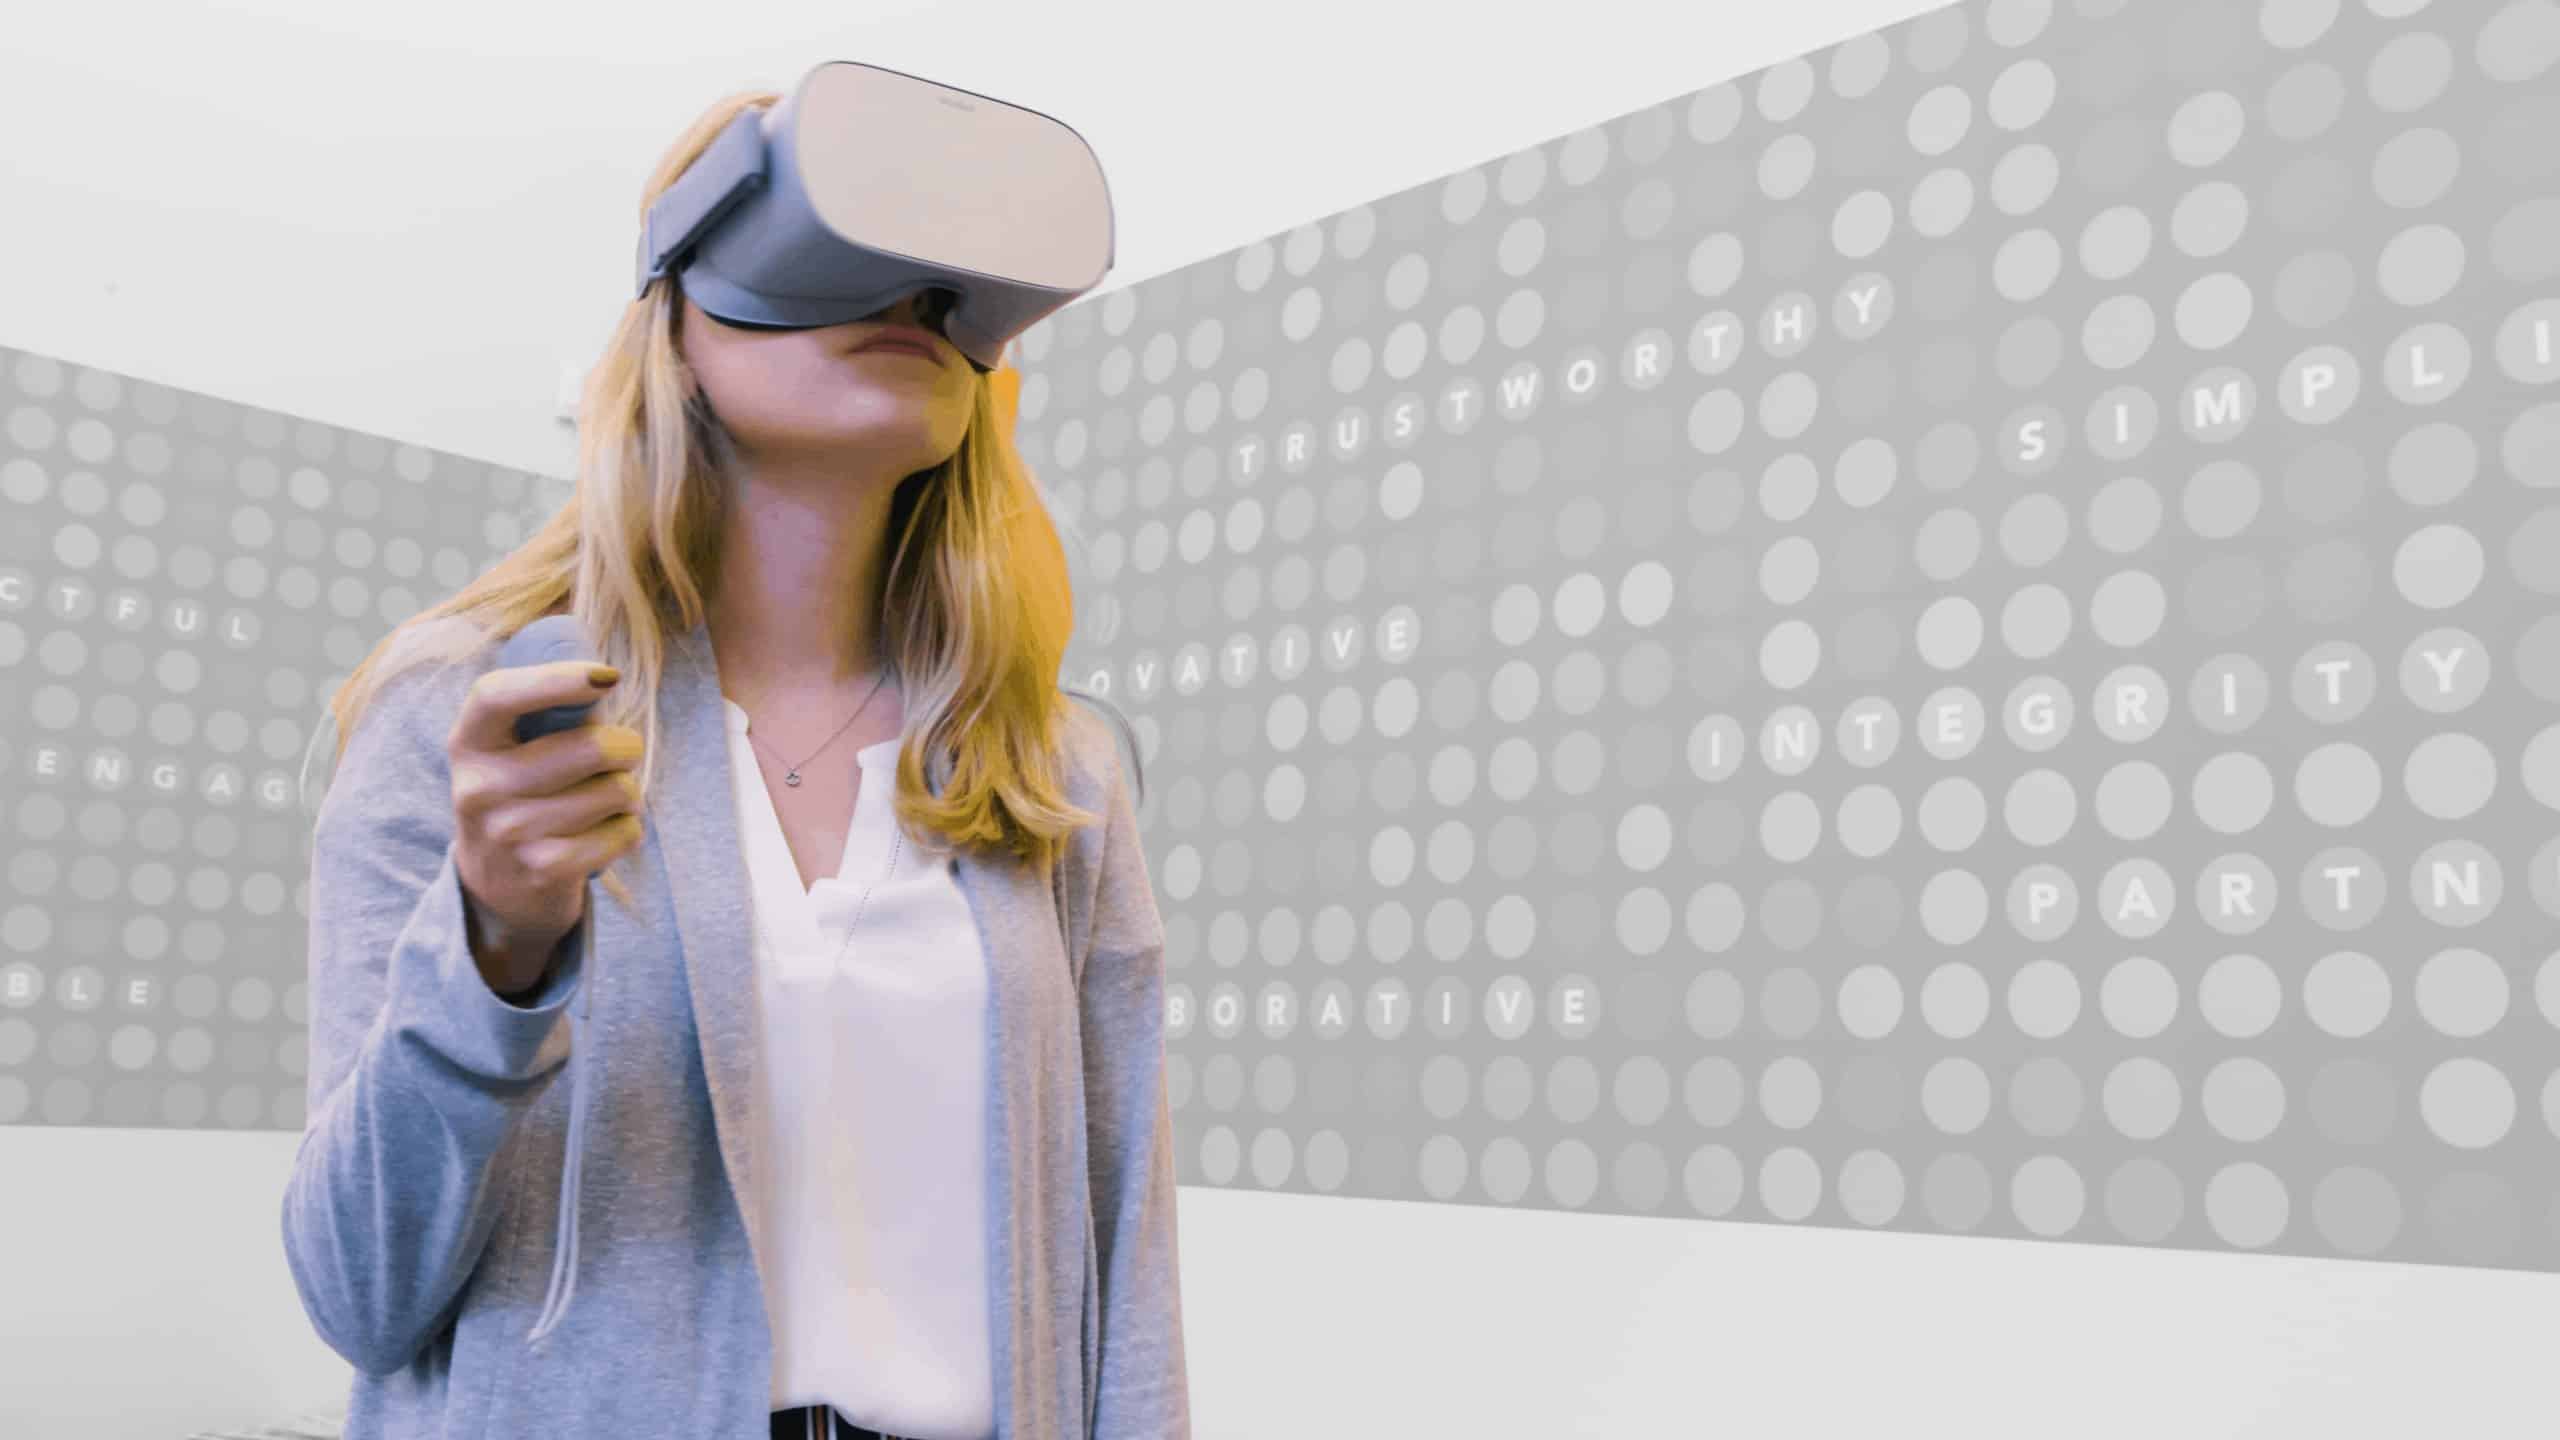 Roundtable Learning employee using VR headset and handset